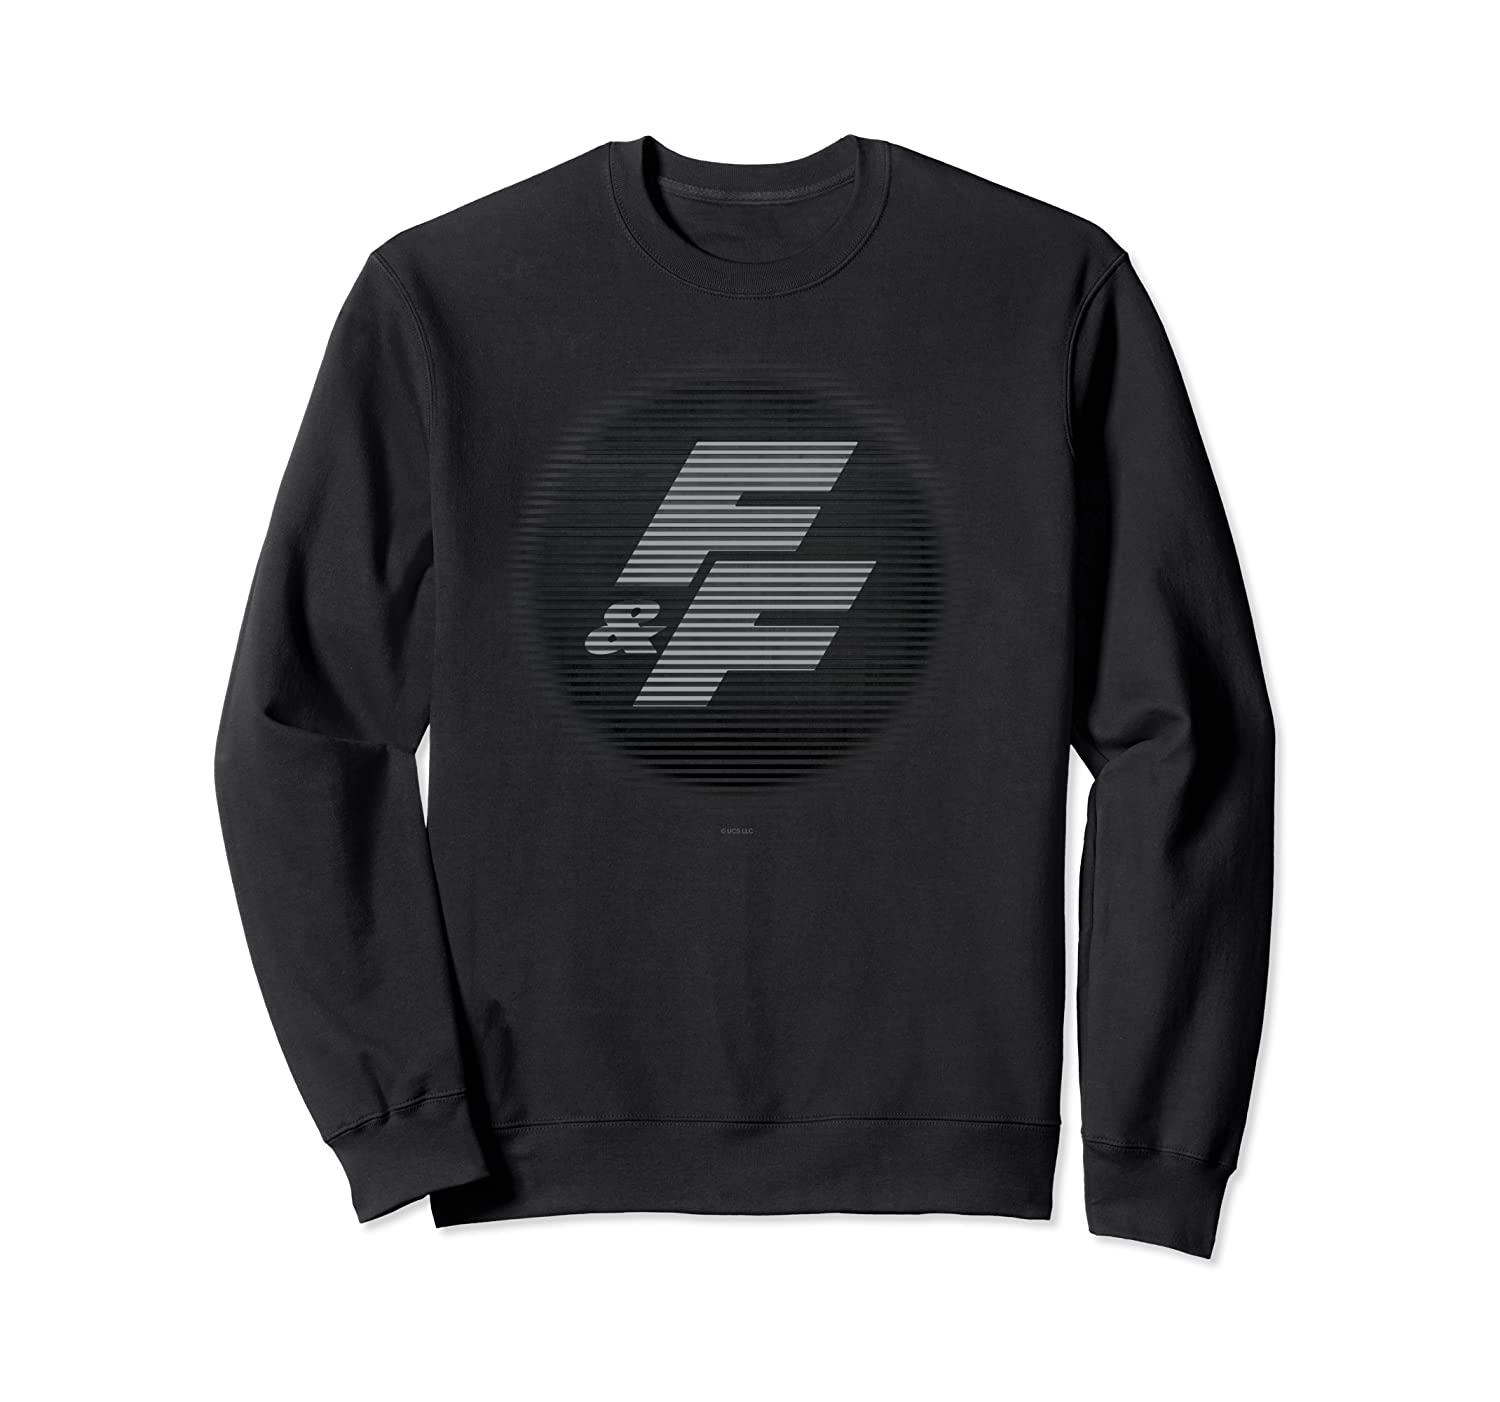 Fast Furious Shuttered Logo Pullover Shirts Crewneck Sweater